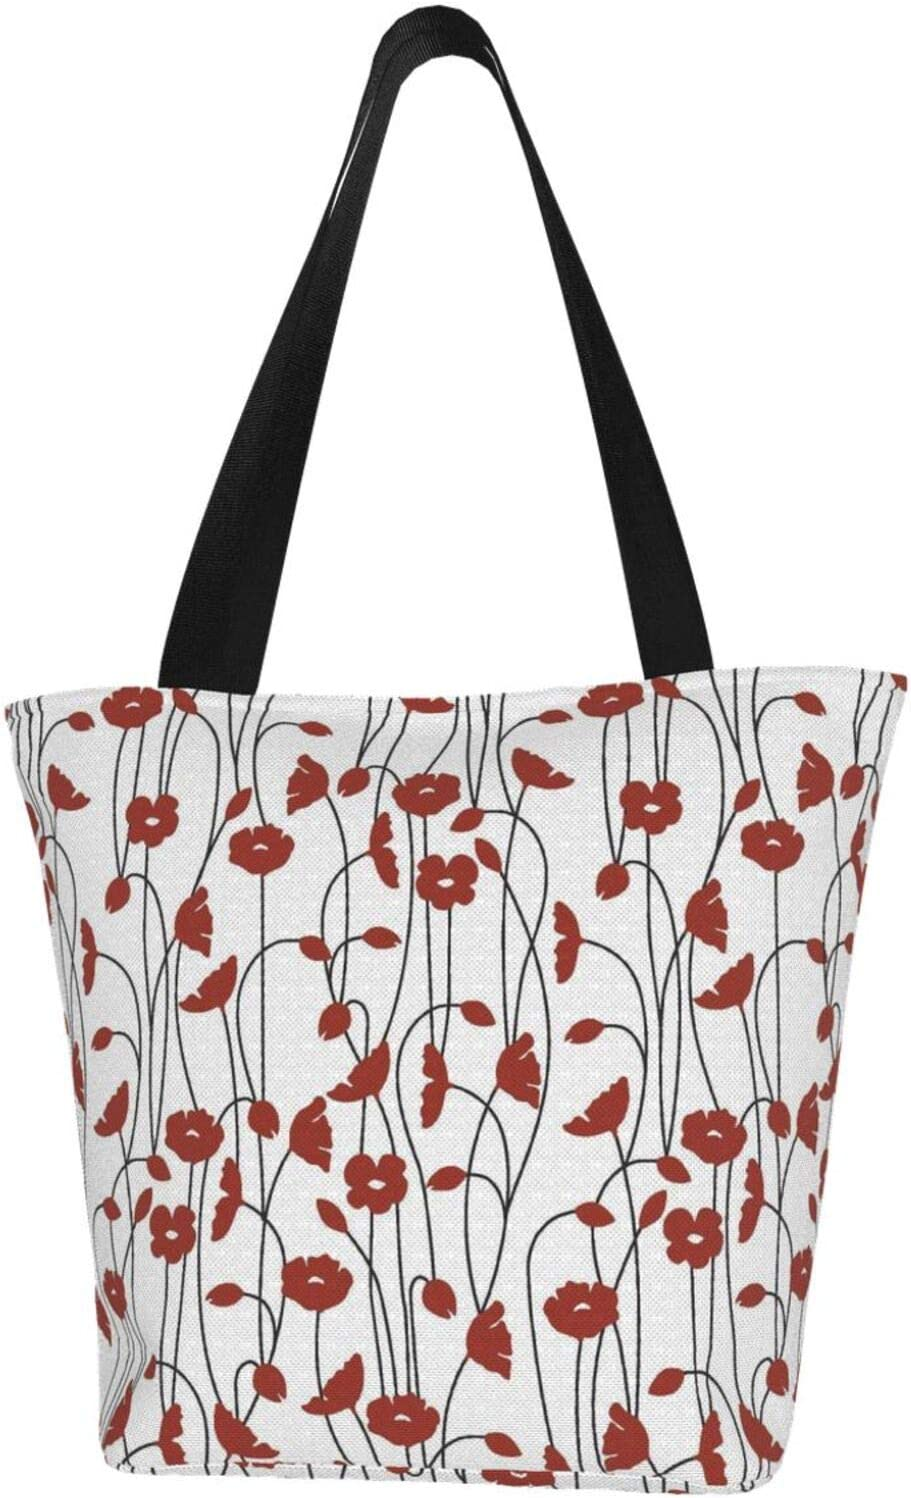 AKLID Red Floral Mail order Pattern Las Vegas Mall Extra Canvas Large Tote Resistant Water